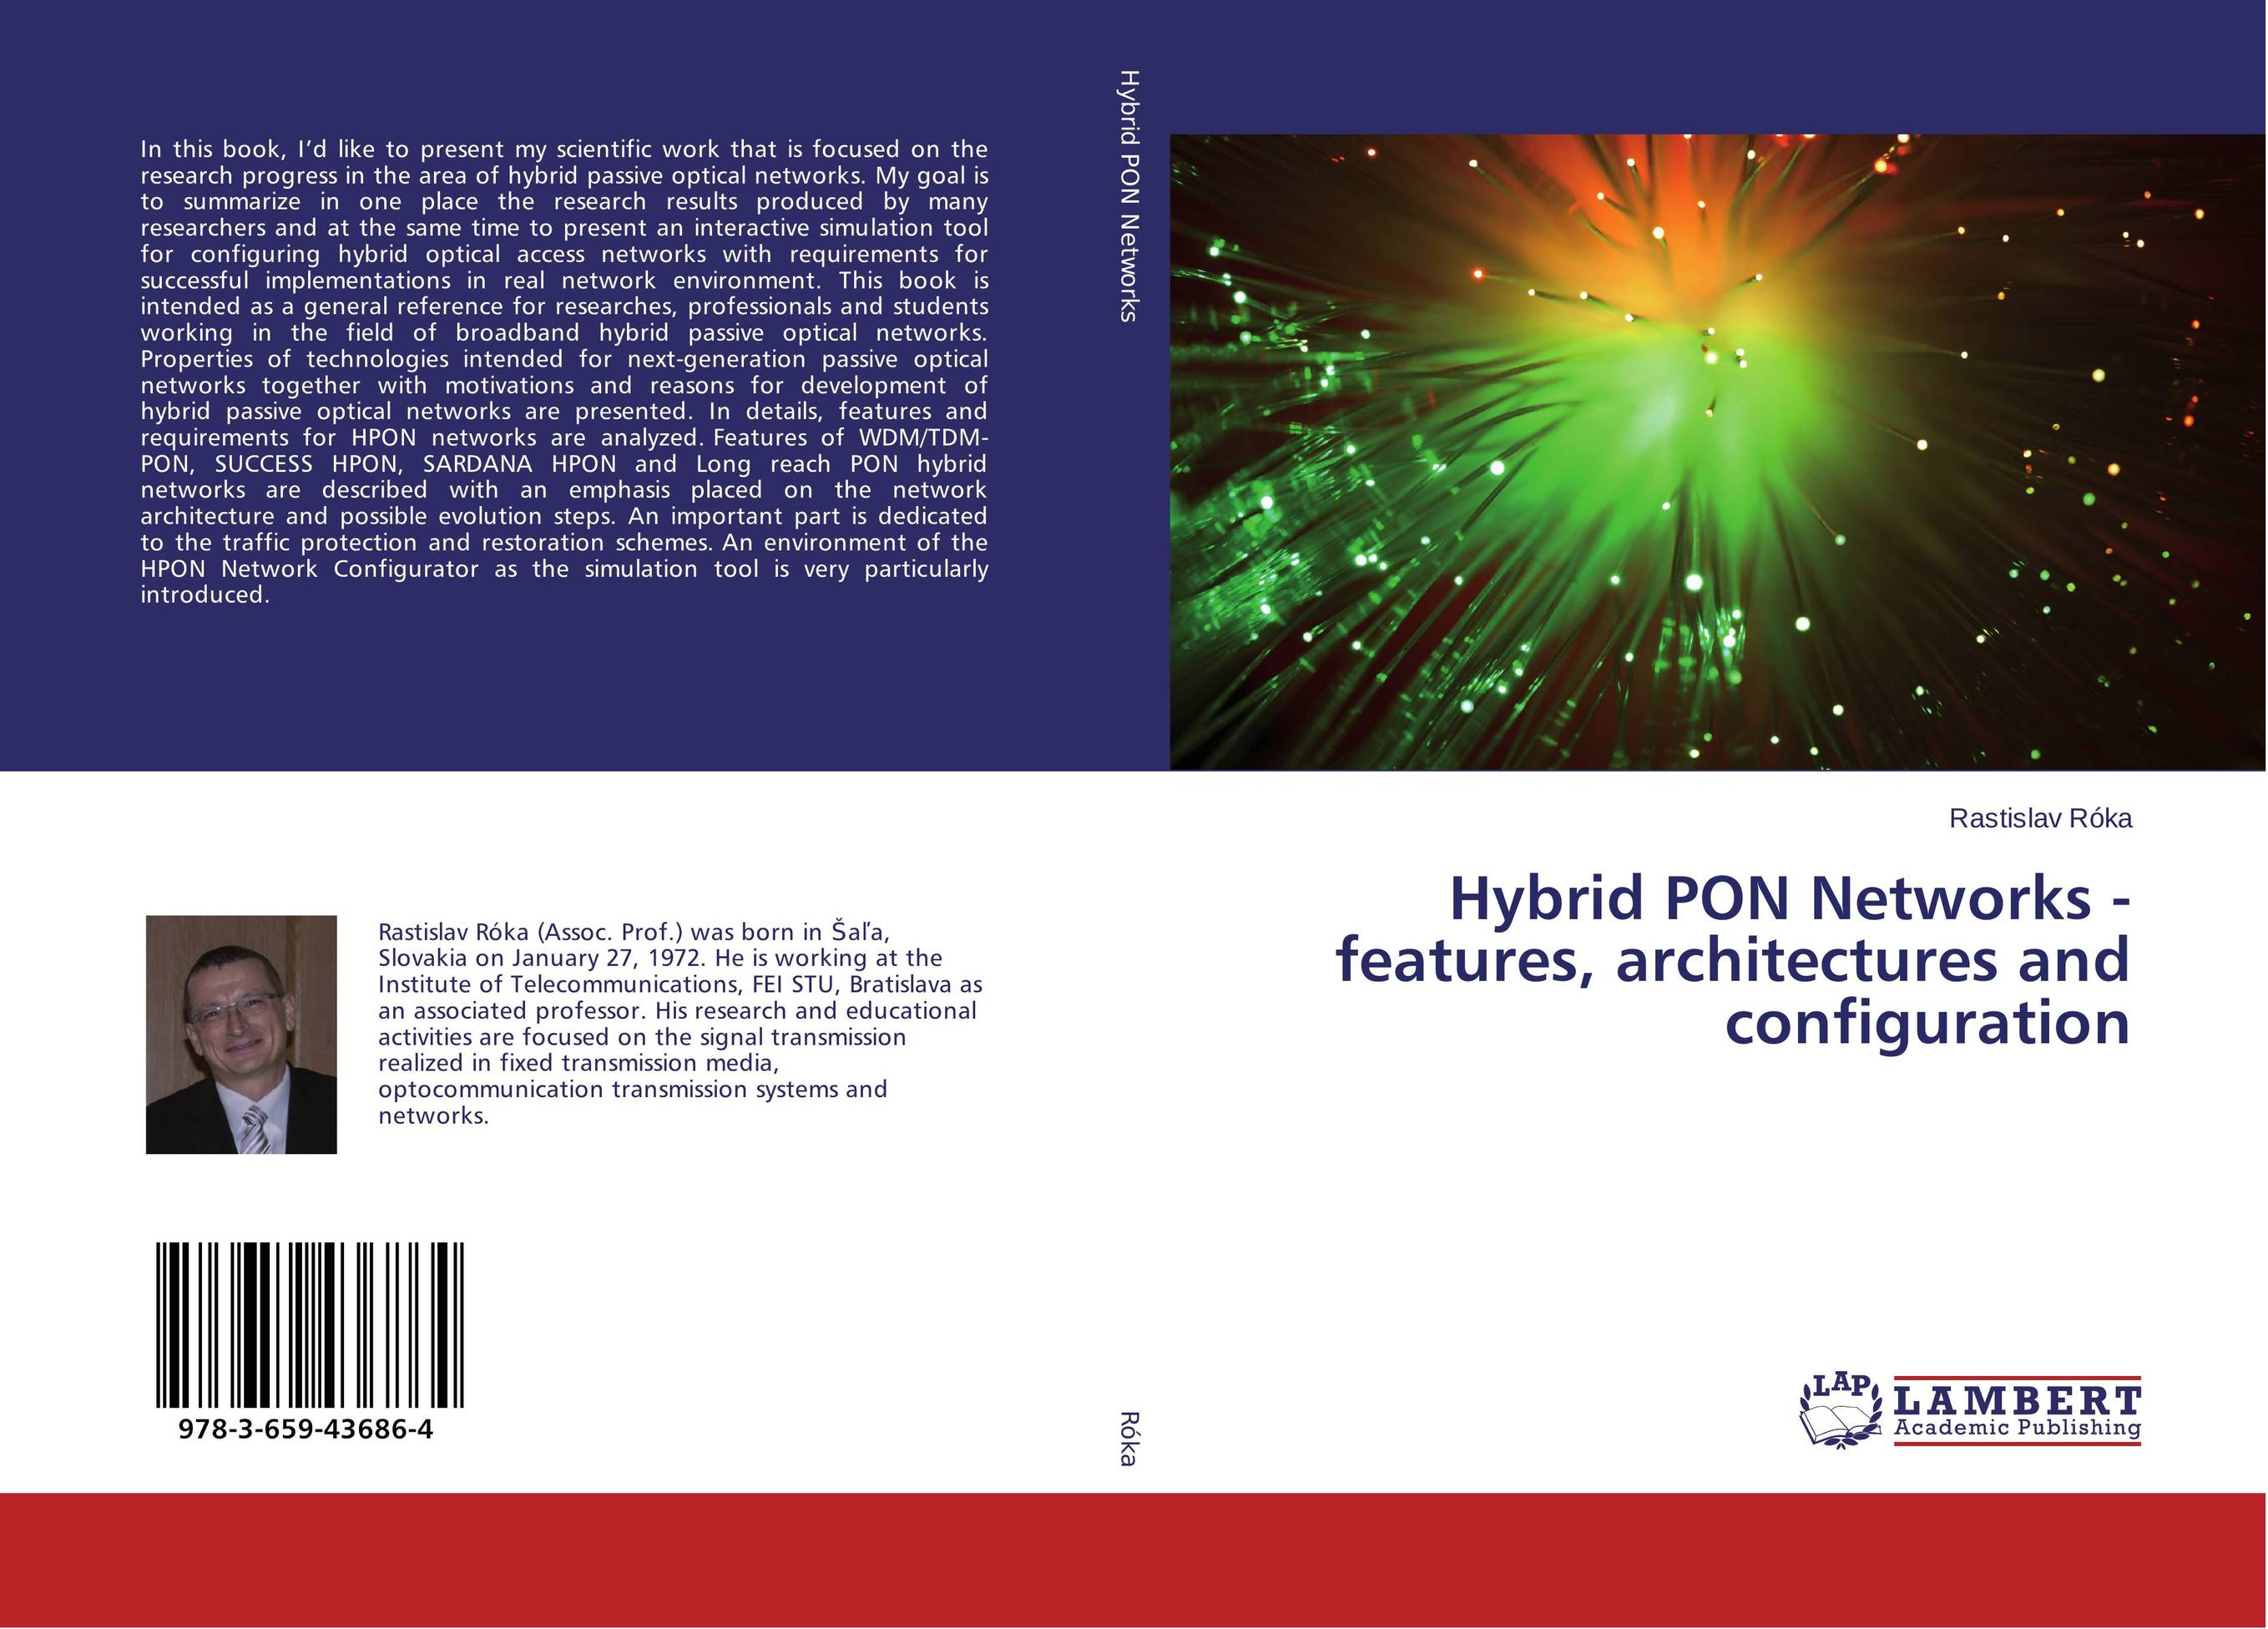 Hybrid PON Networks - features, architectures and configuration advanced optical packet switches over wdm networks